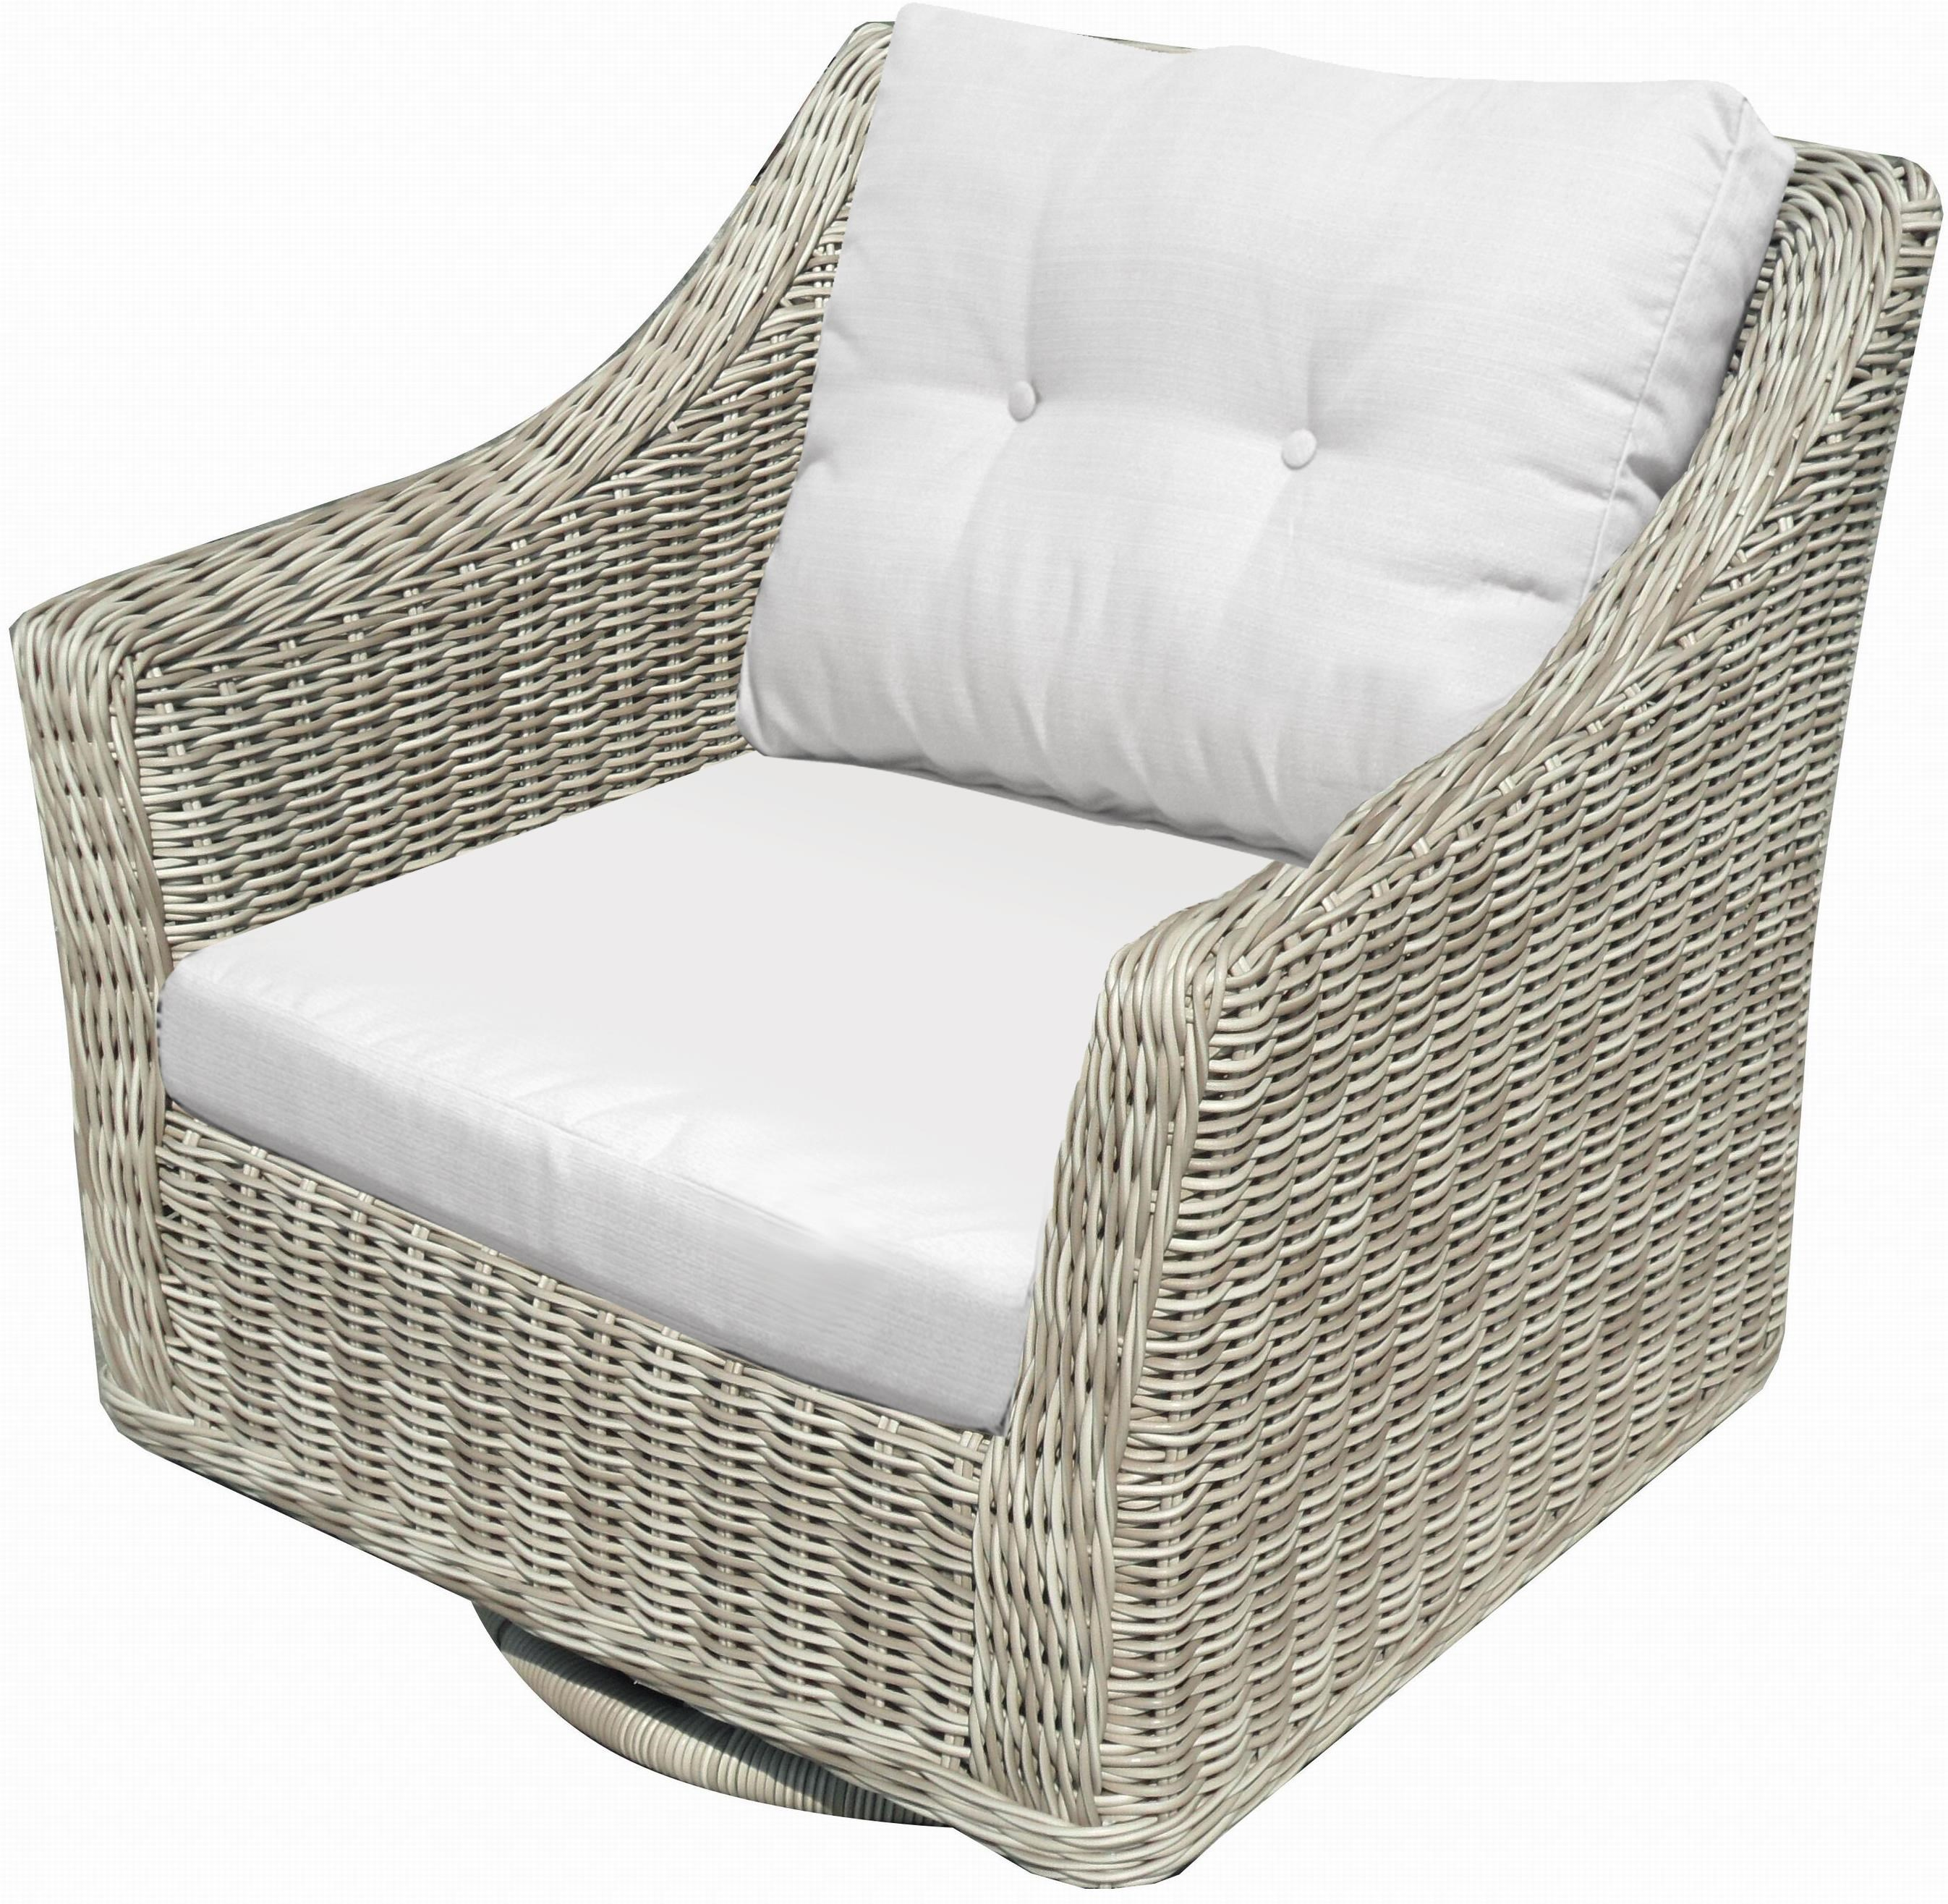 NorthCape International Cambria Swivel Rocker Chair With With Resin Weave    John V Schultz Furniture   Outdoor Upholstered Chair